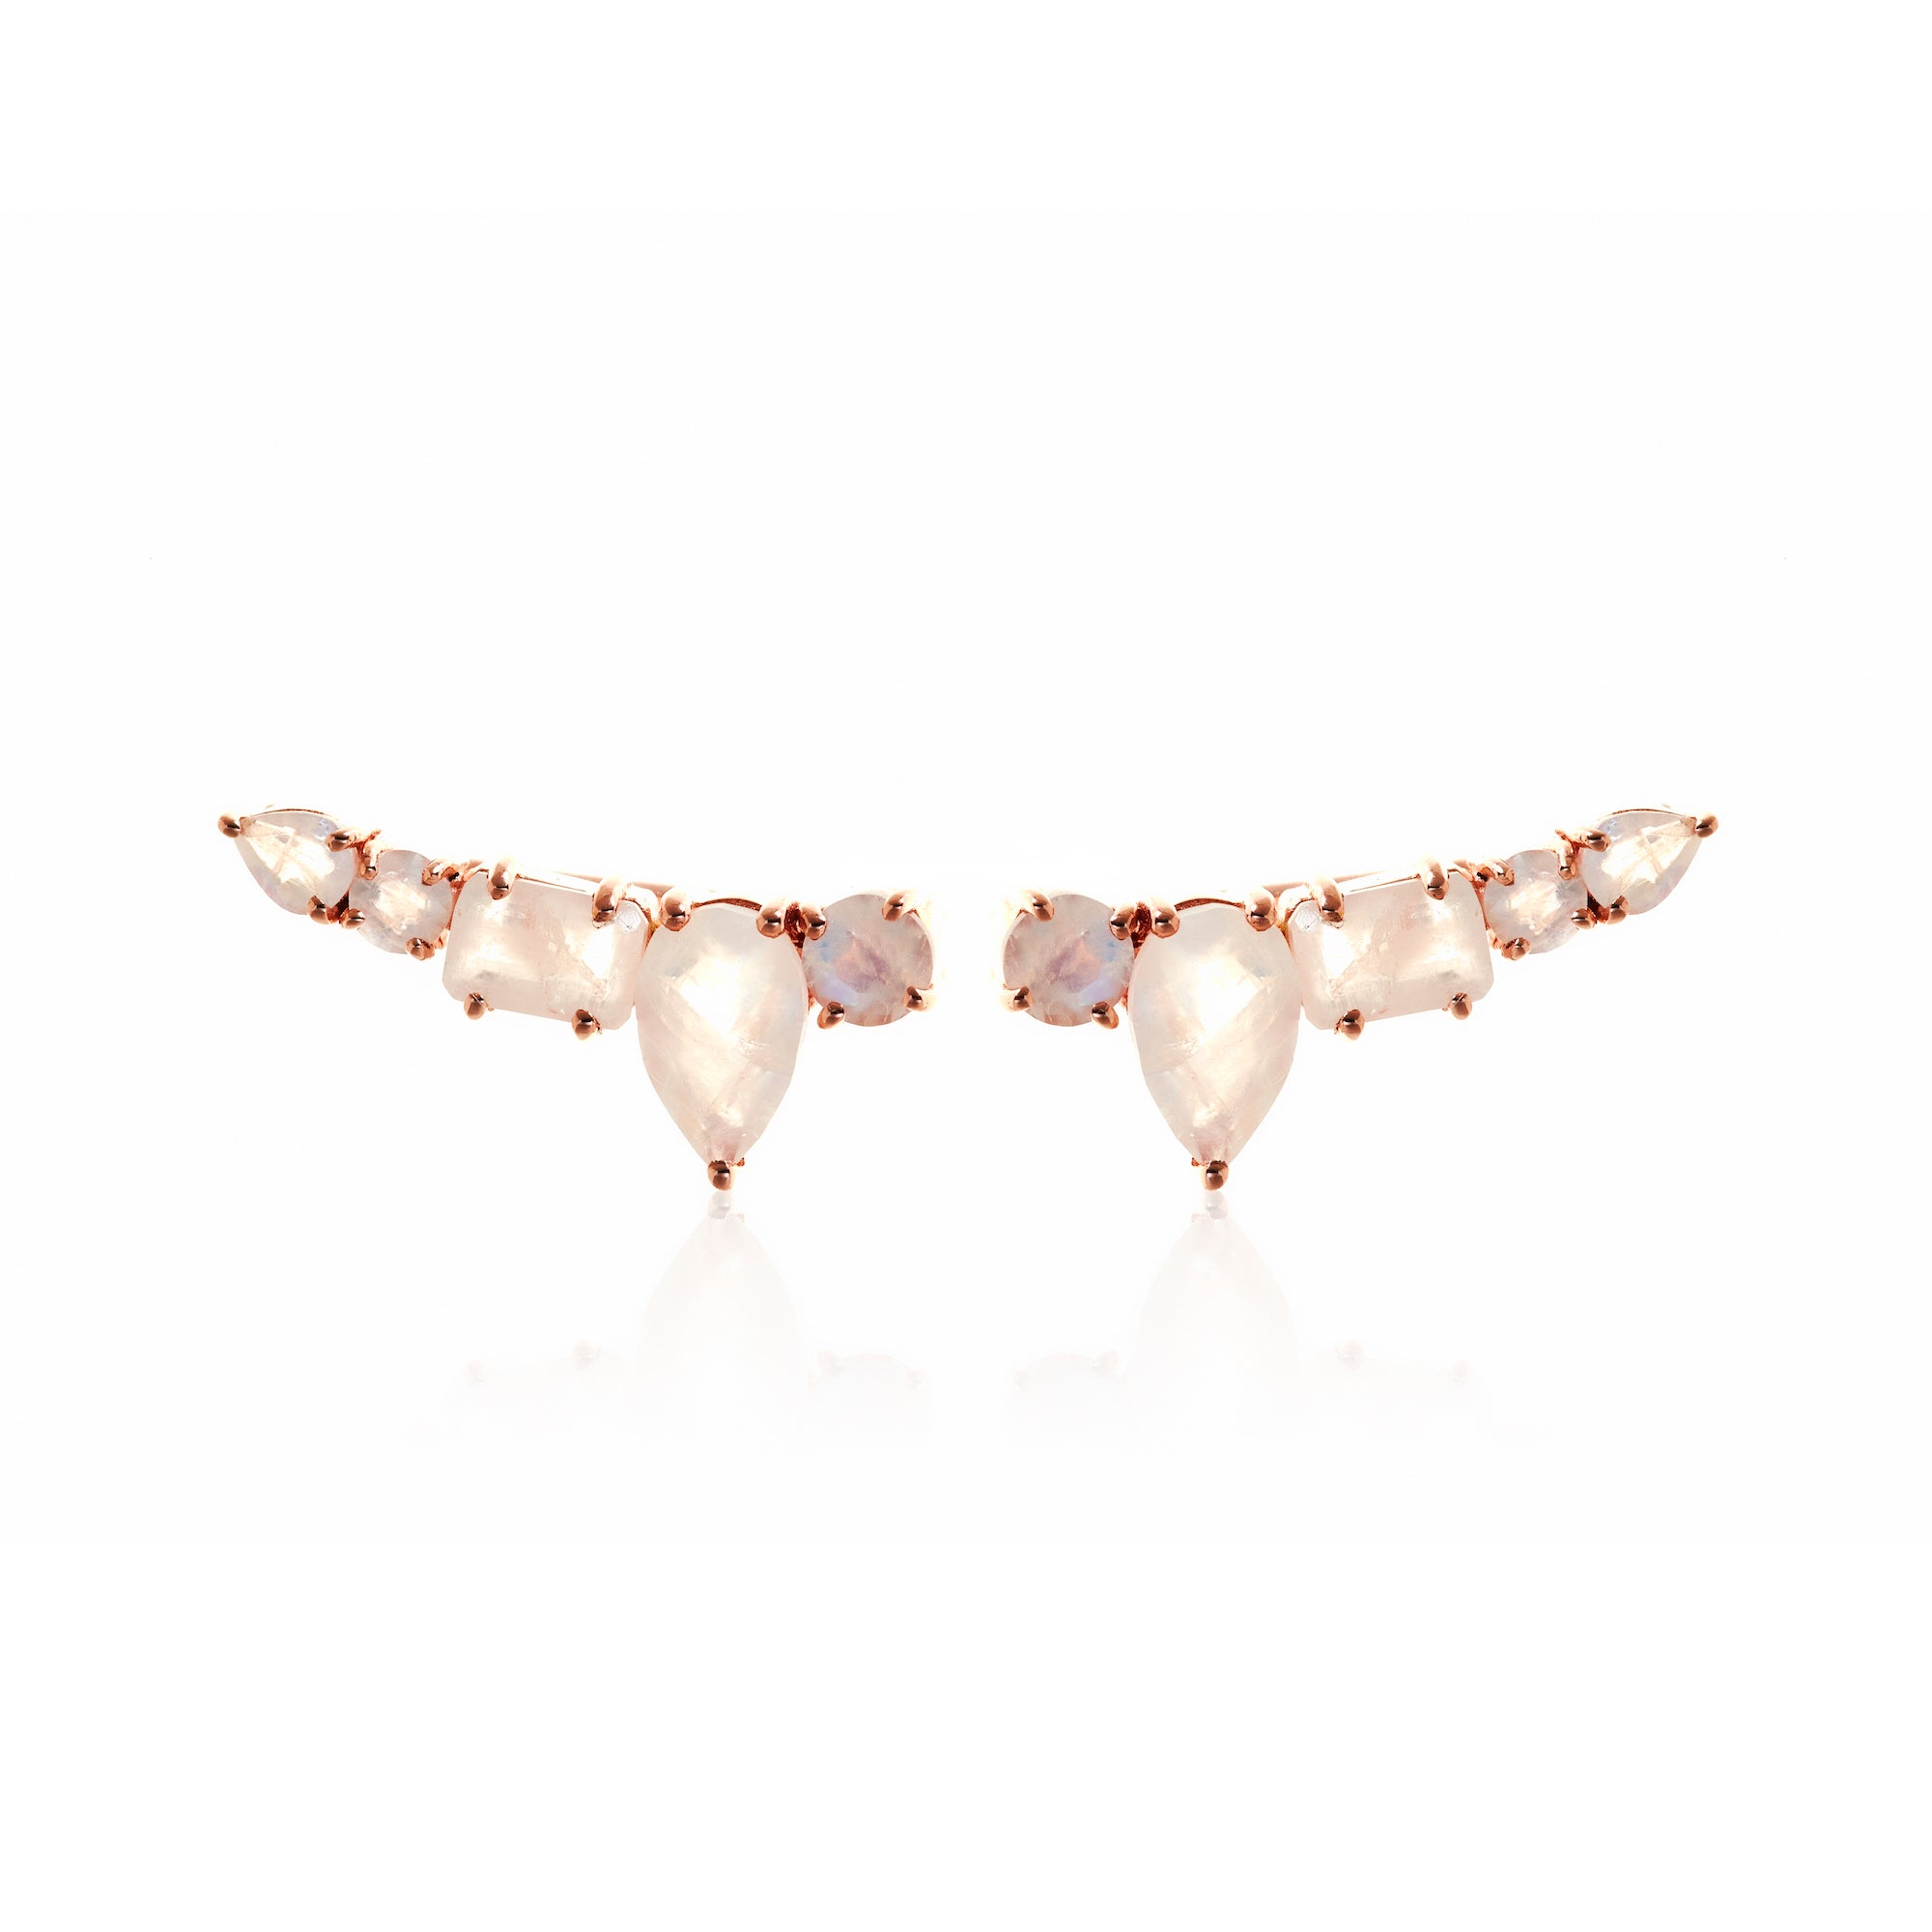 Silk&Steel Jewellery Prima Amore Moonstone and Rose Gold Ear Climber La Dolce Vita